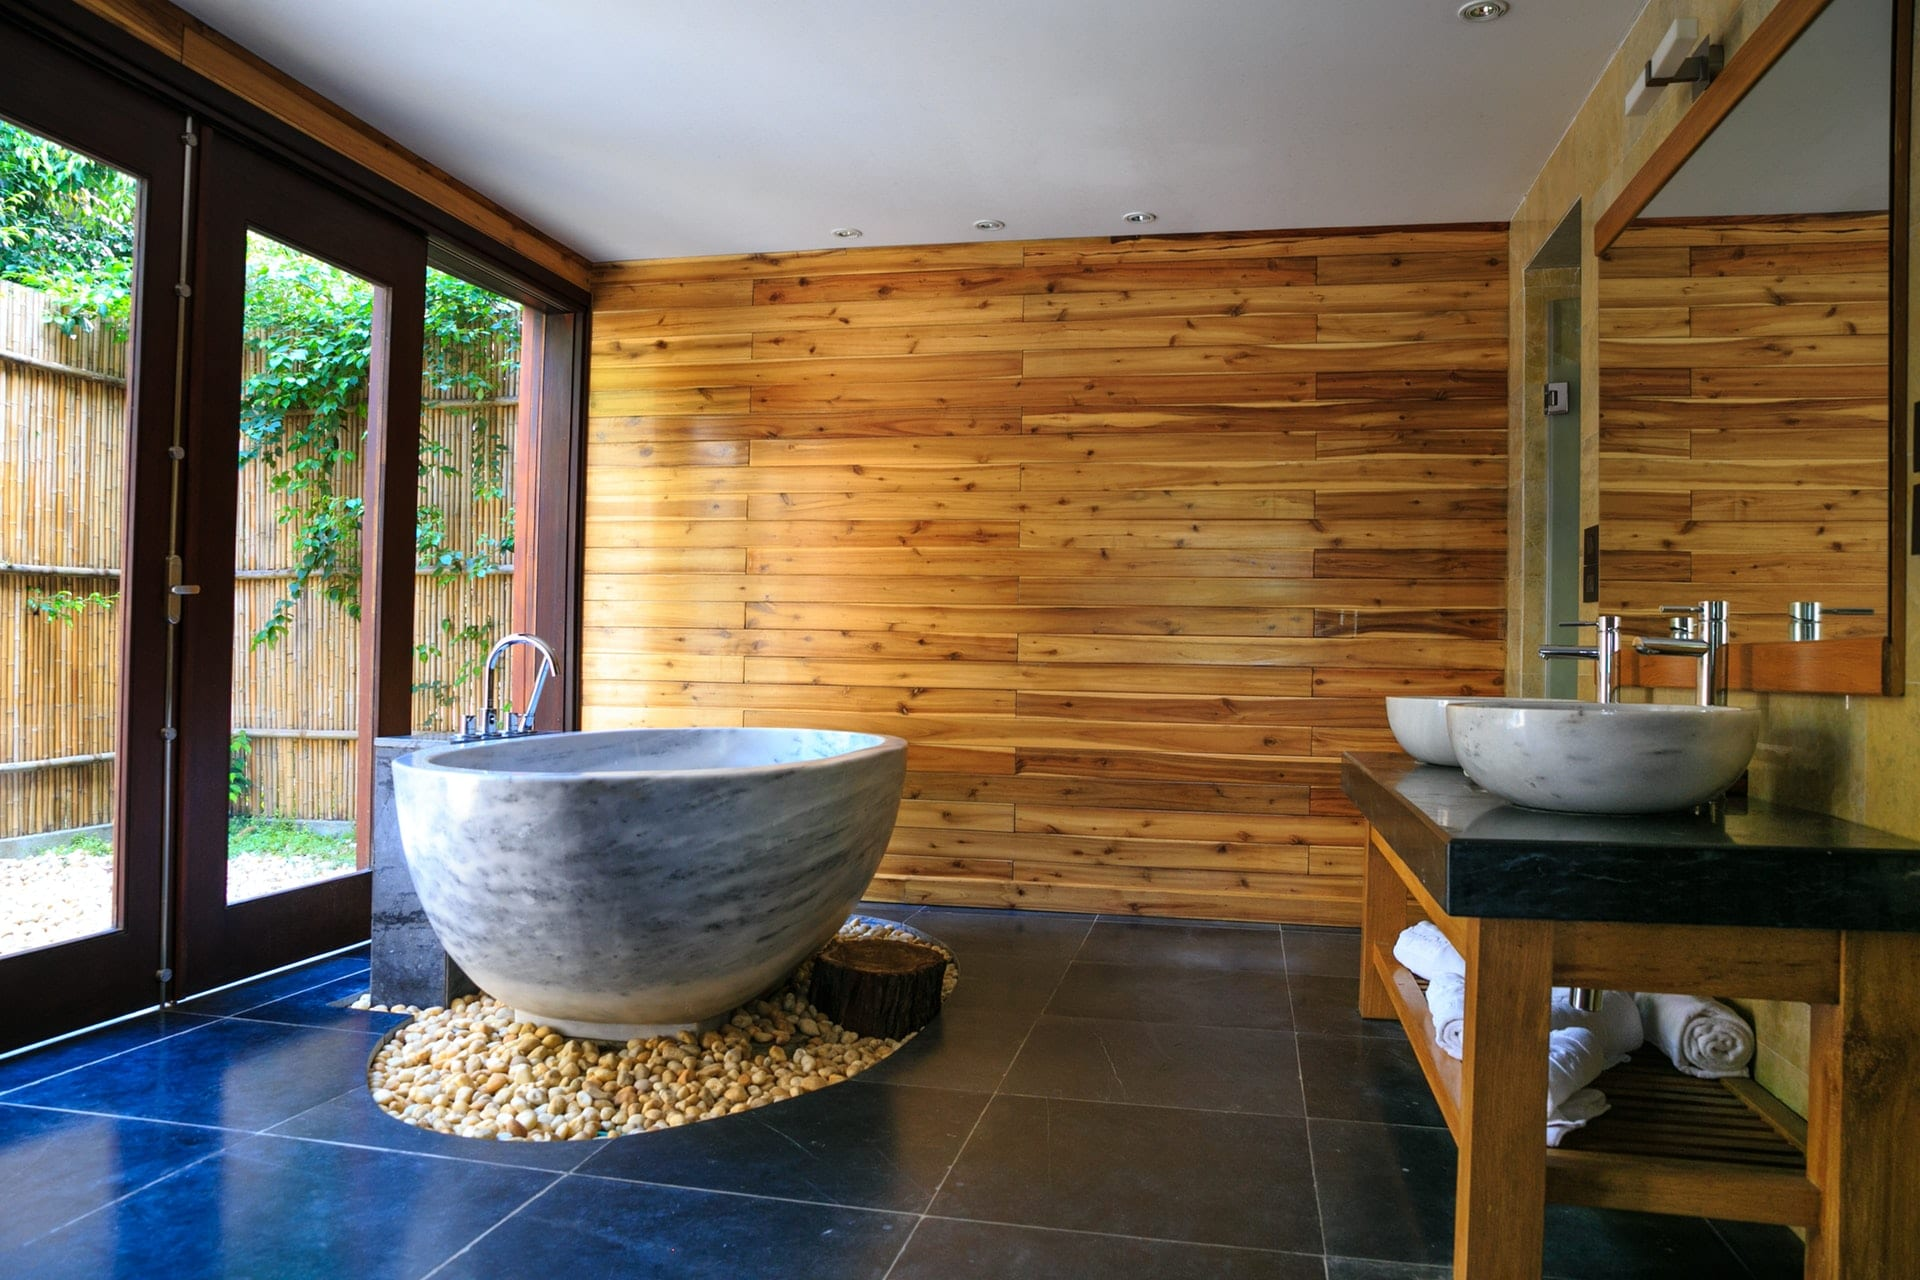 picture of spa bathroom with solo bathtub and wooden walls